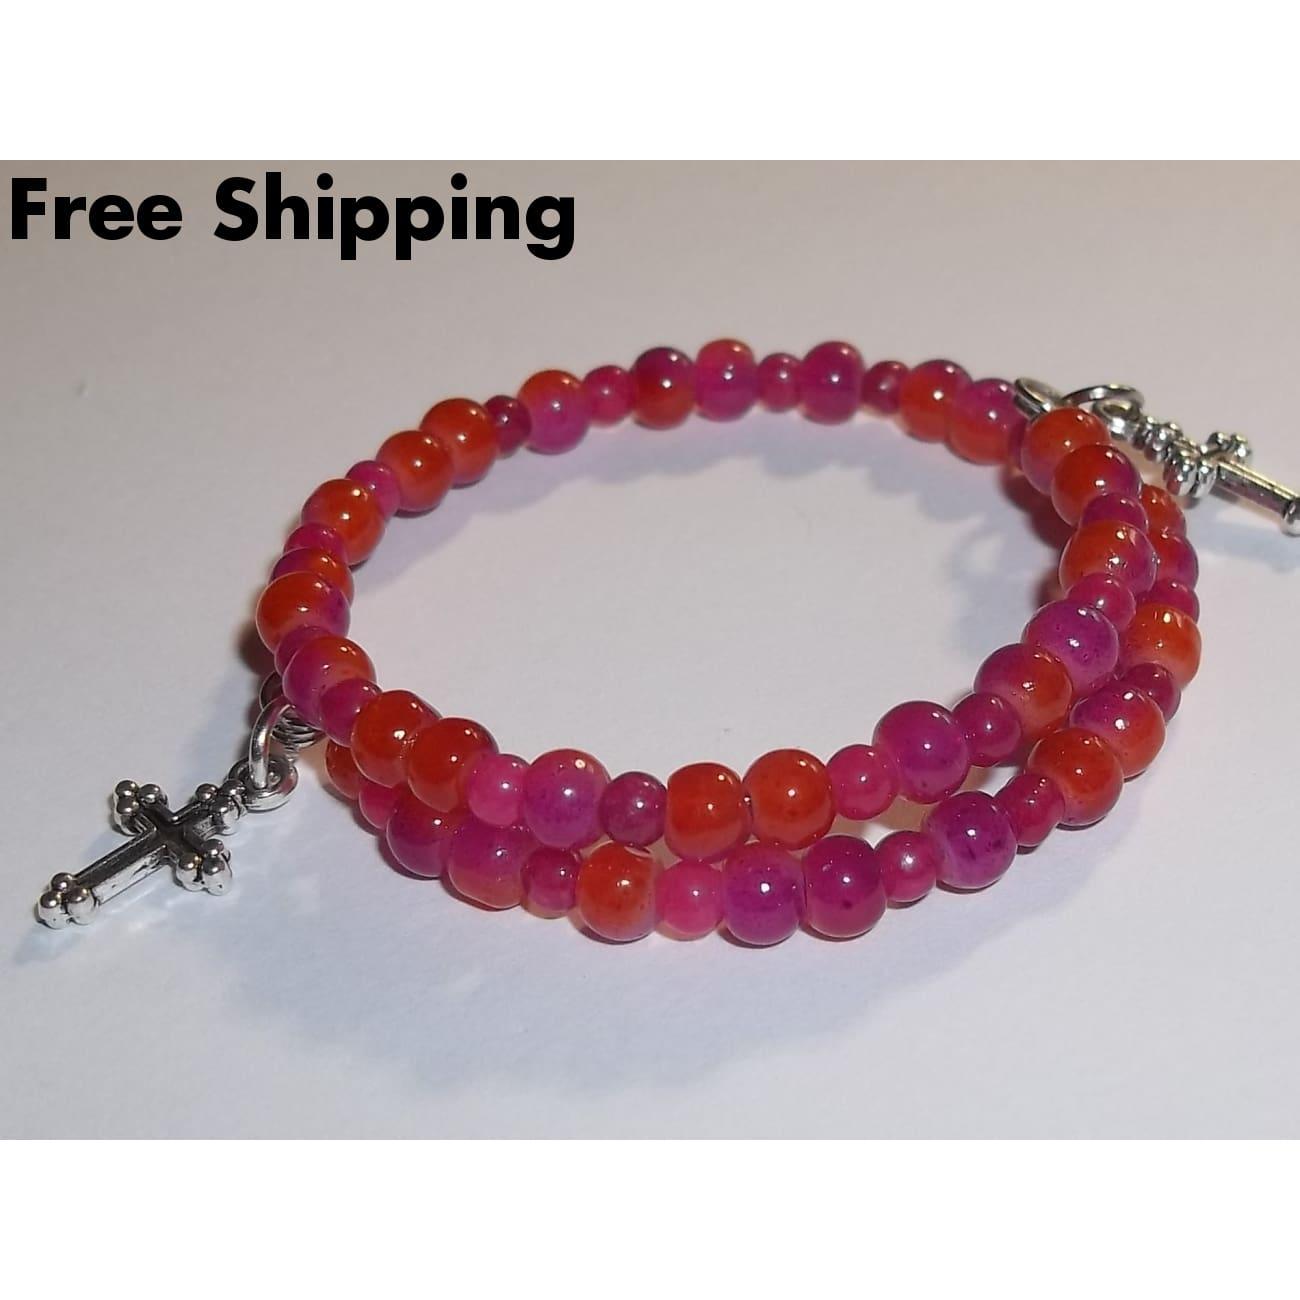 Dainty Diva Crosses Hot Pink Orange 2 Tone Glass Beaded Artisan Crafted Stackables Wrap Bracelet (Xxs-Xs) - Bracelets